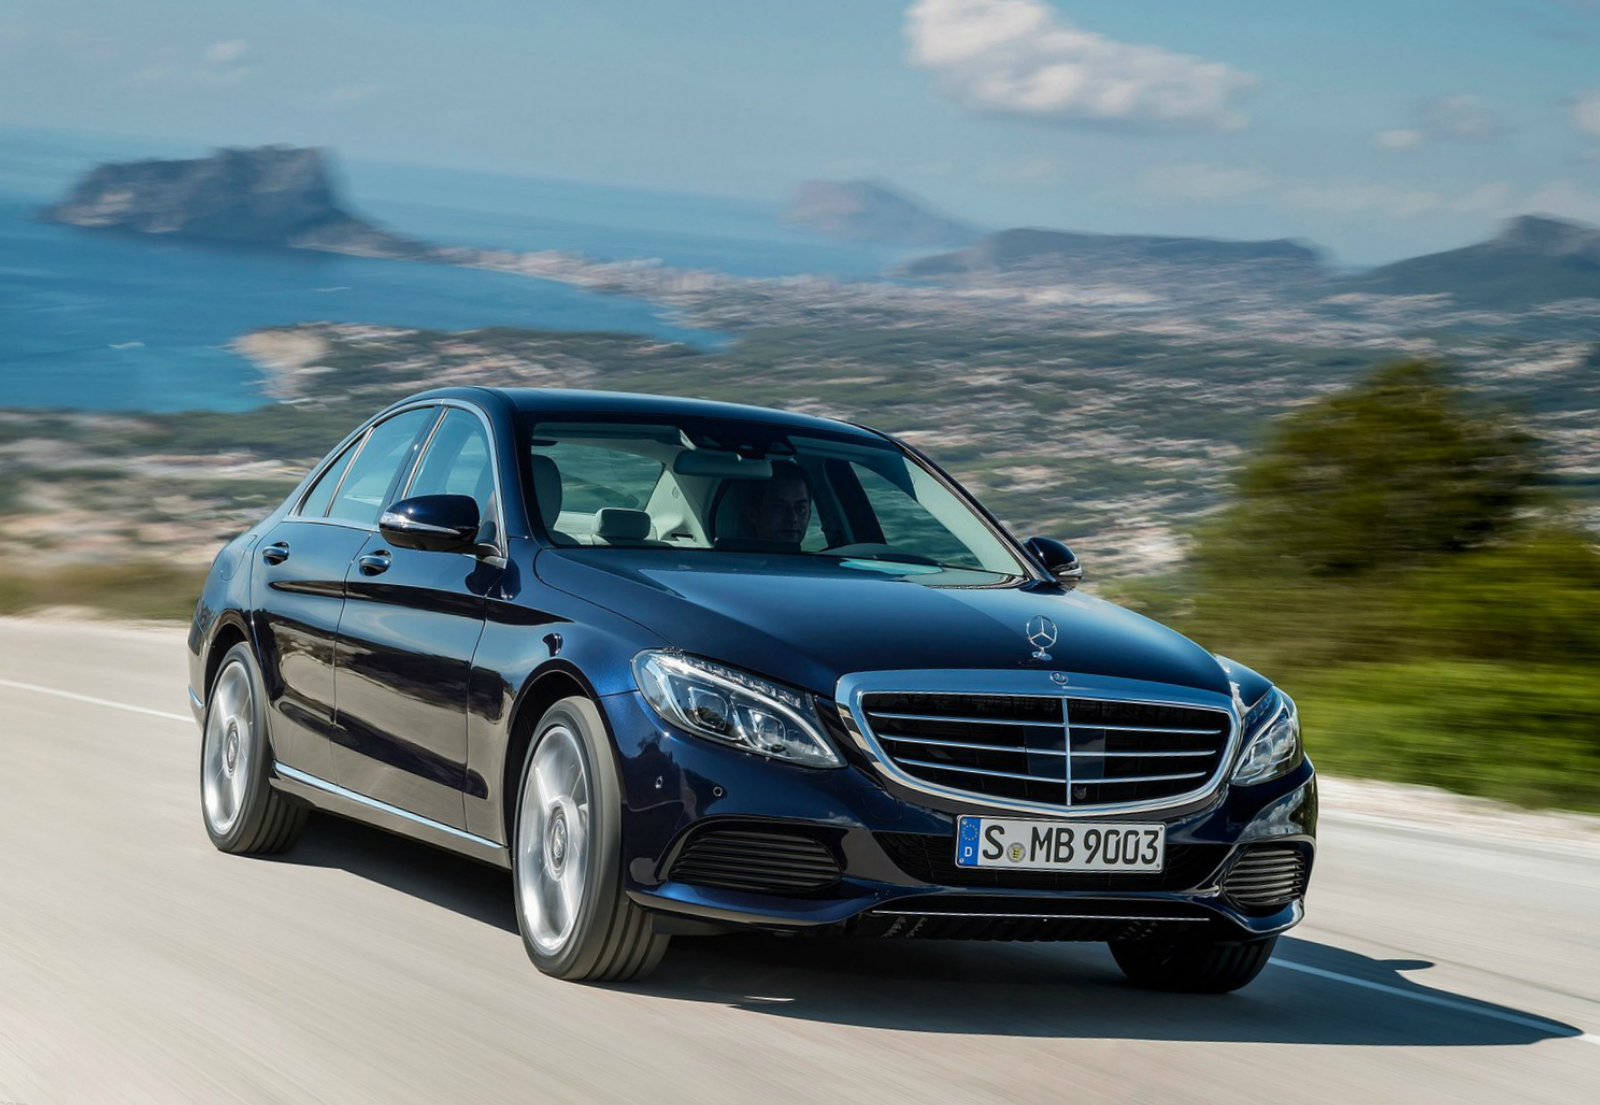 Mercedes benz c class 2015 reviews mercedes benz c class for Mercedes benz reviews c class